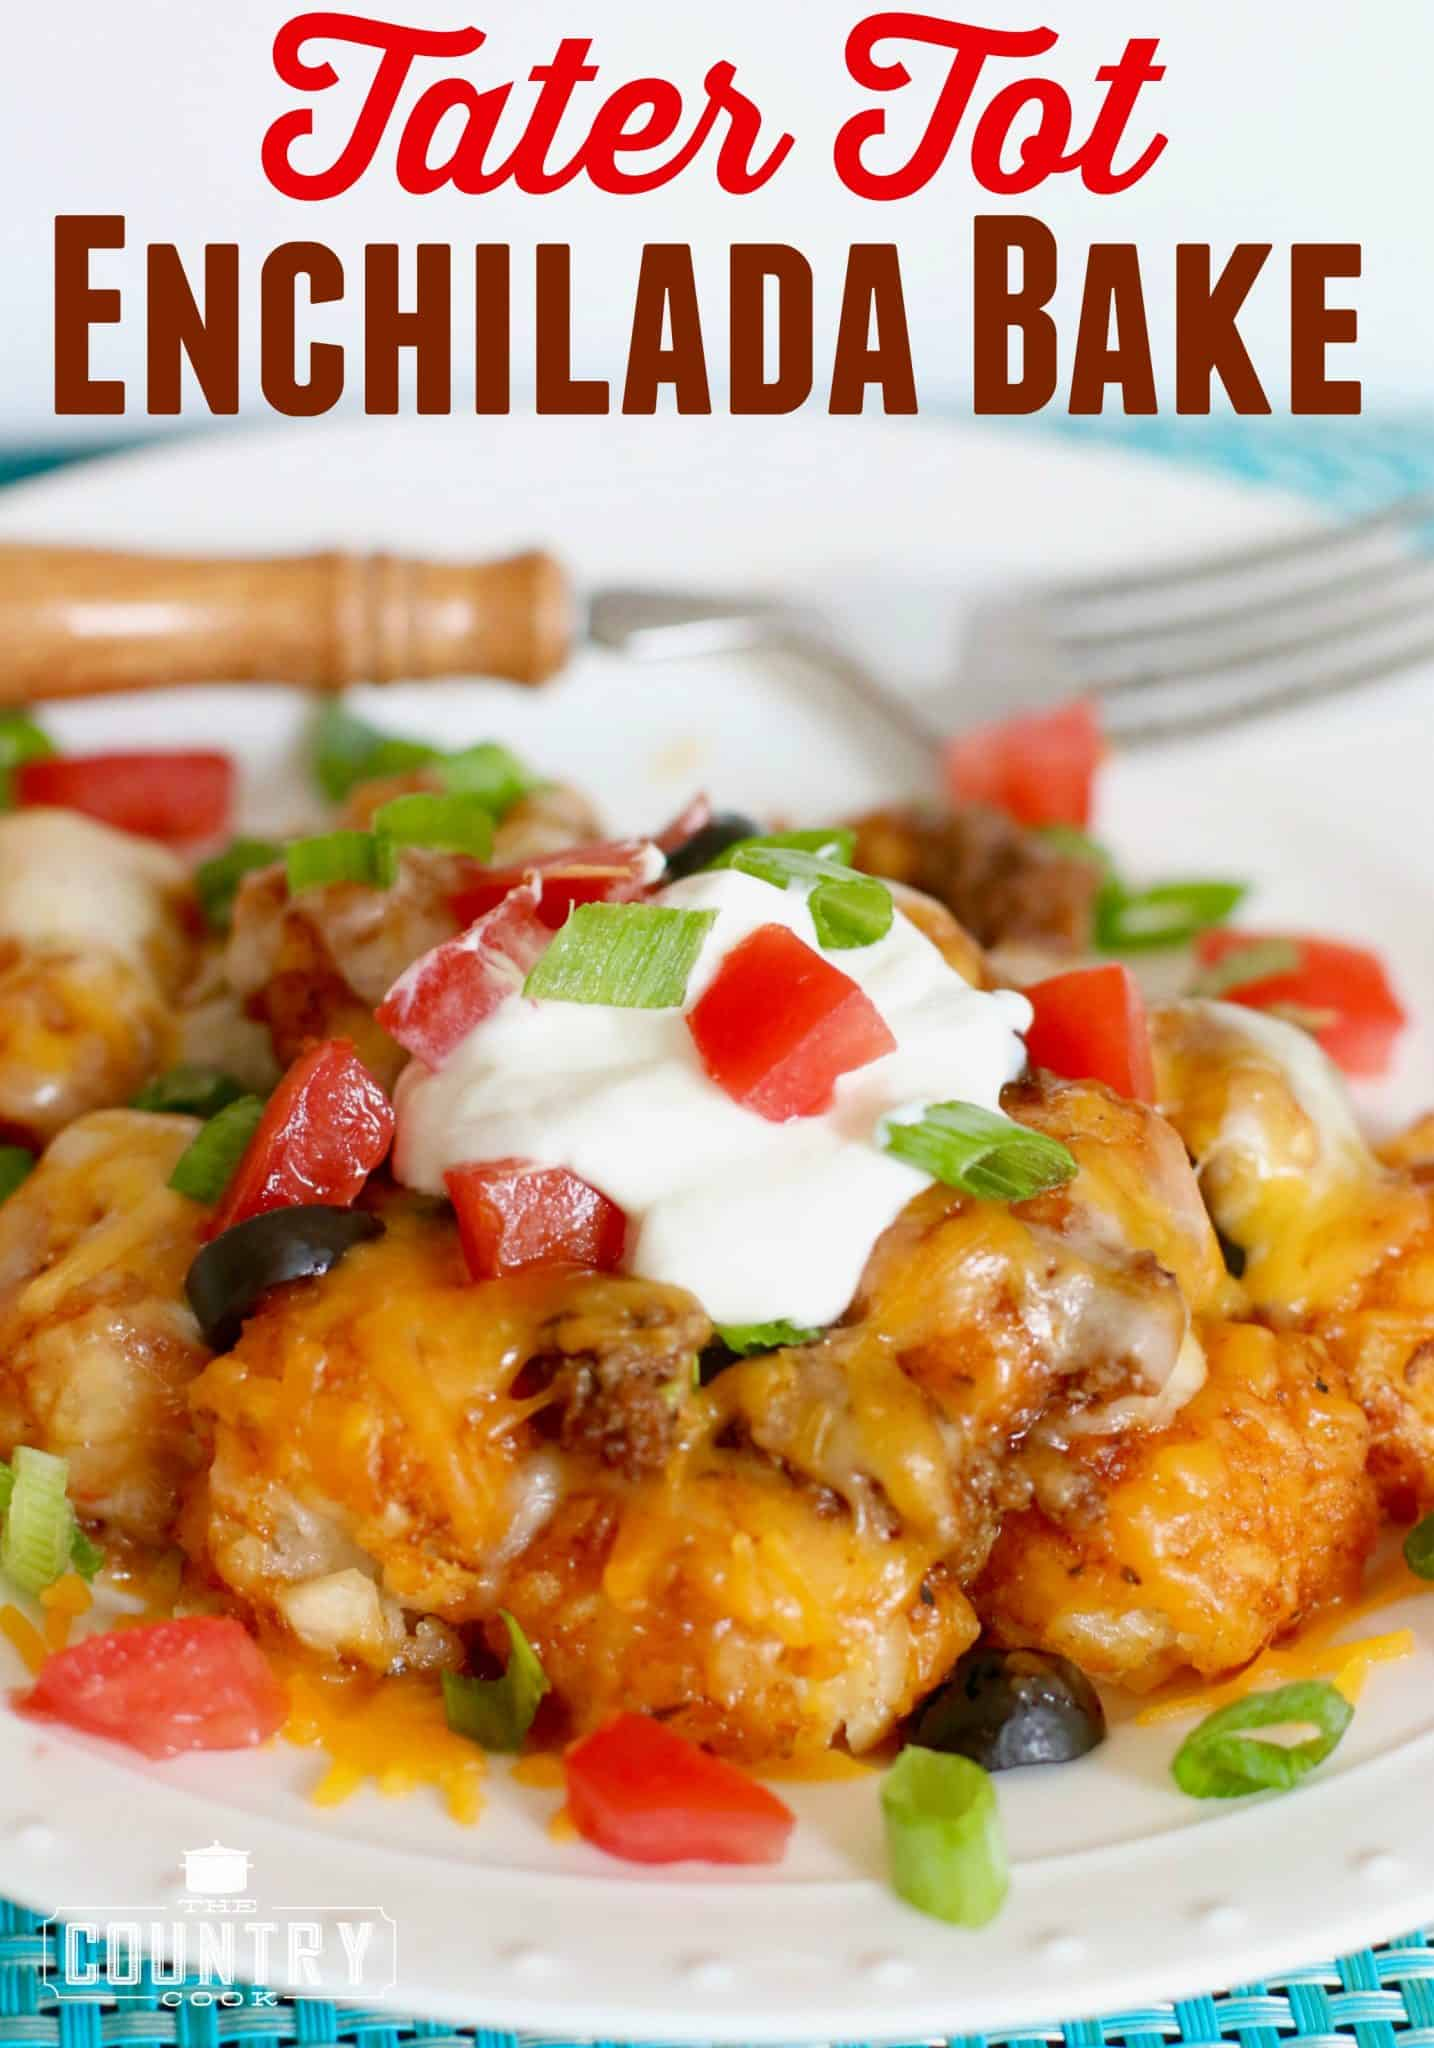 main image for Tater Tot Enchilada Bake shown on a white plate and topped with sour cream, diced tomatoes and sliced green onions.